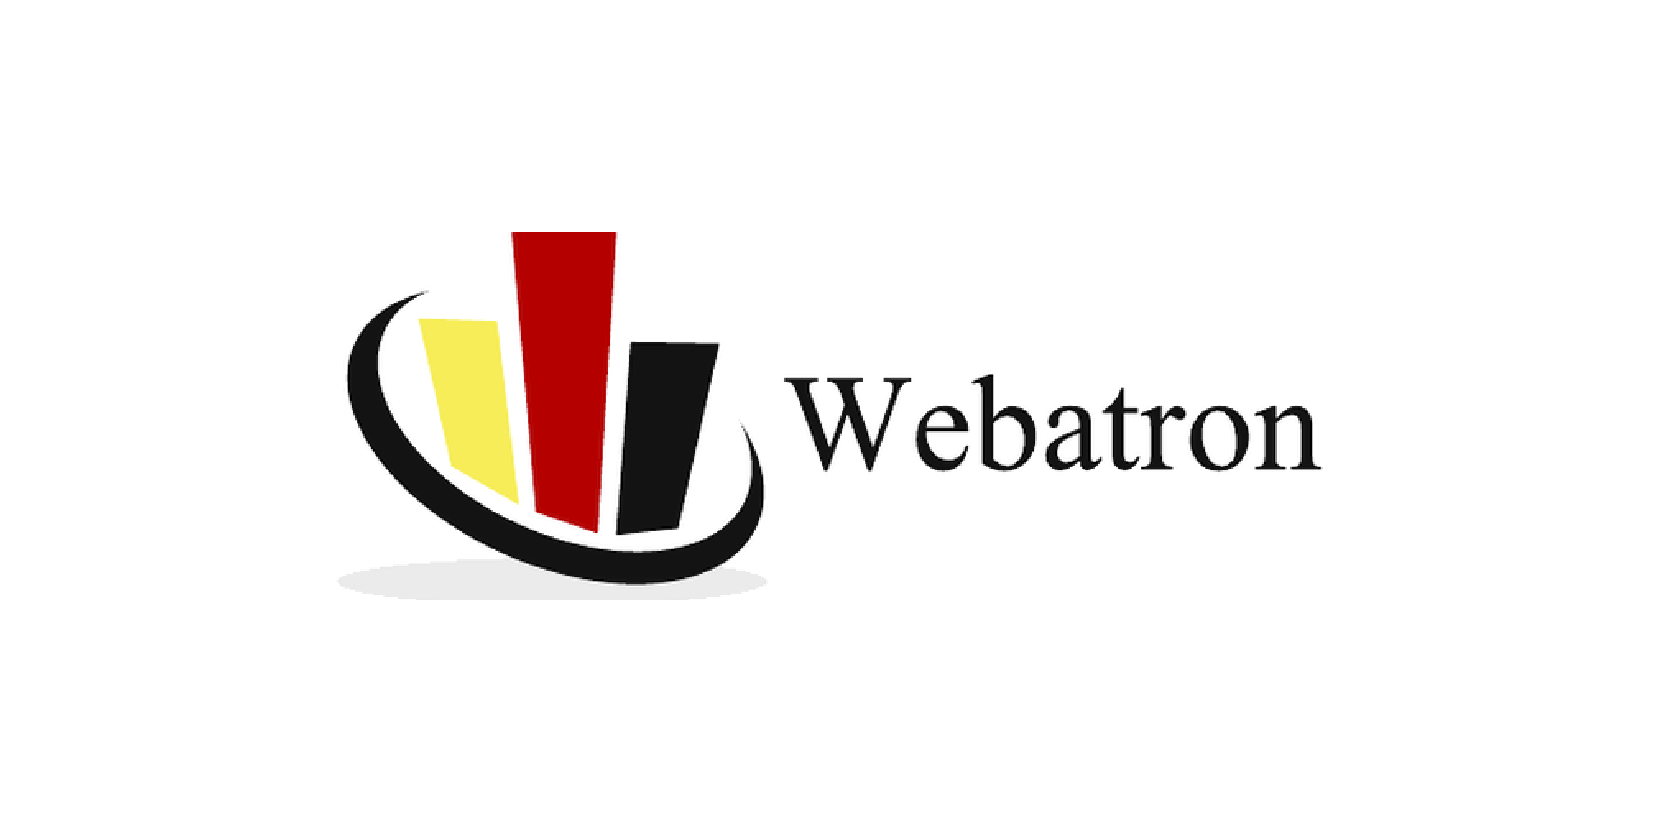 - Webatron provides Managed IT Services to dental offices. Our team has a deep understanding of the dental industry and the knowledge to implement the best dental IT solutions.